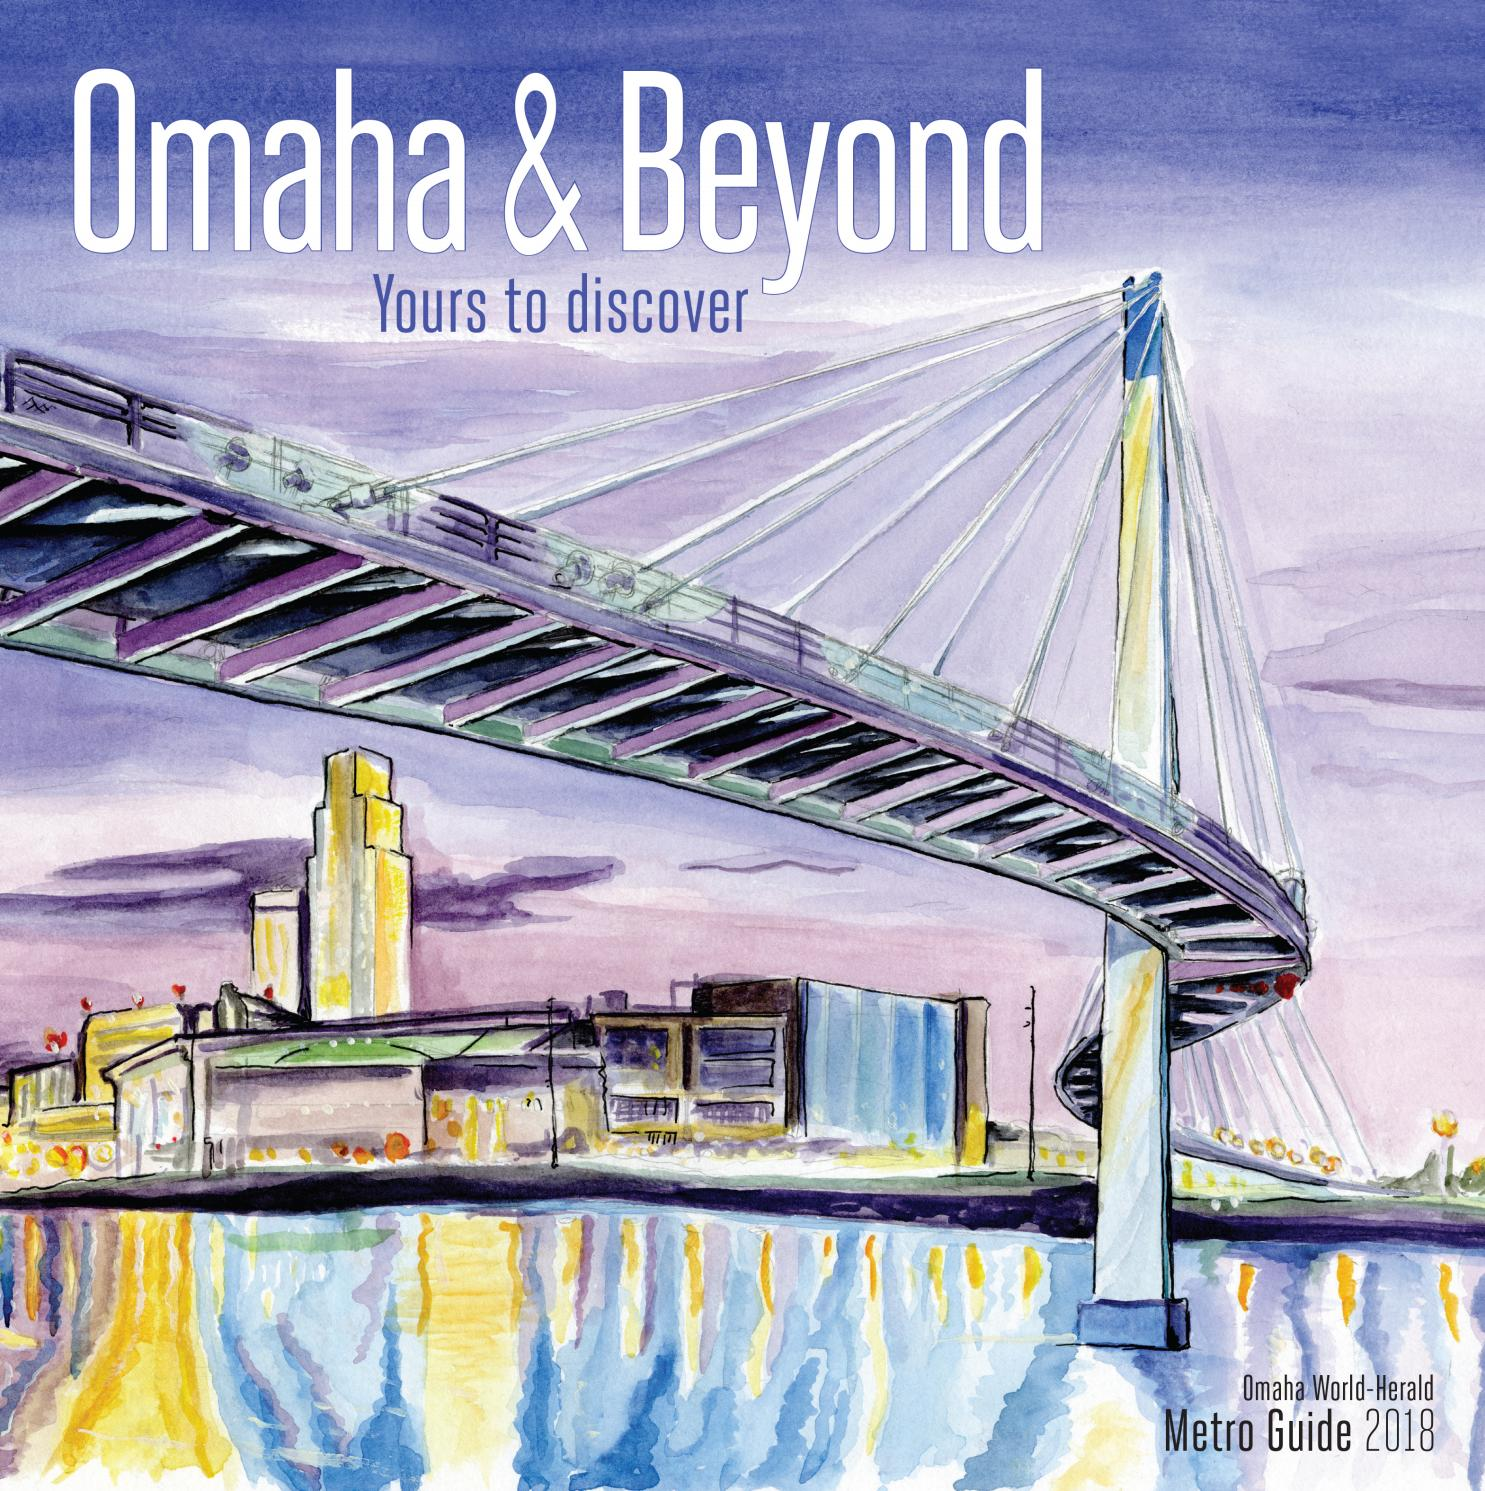 Metro Guide 2018 by Omaha World-Herald - issuu 952265ea909